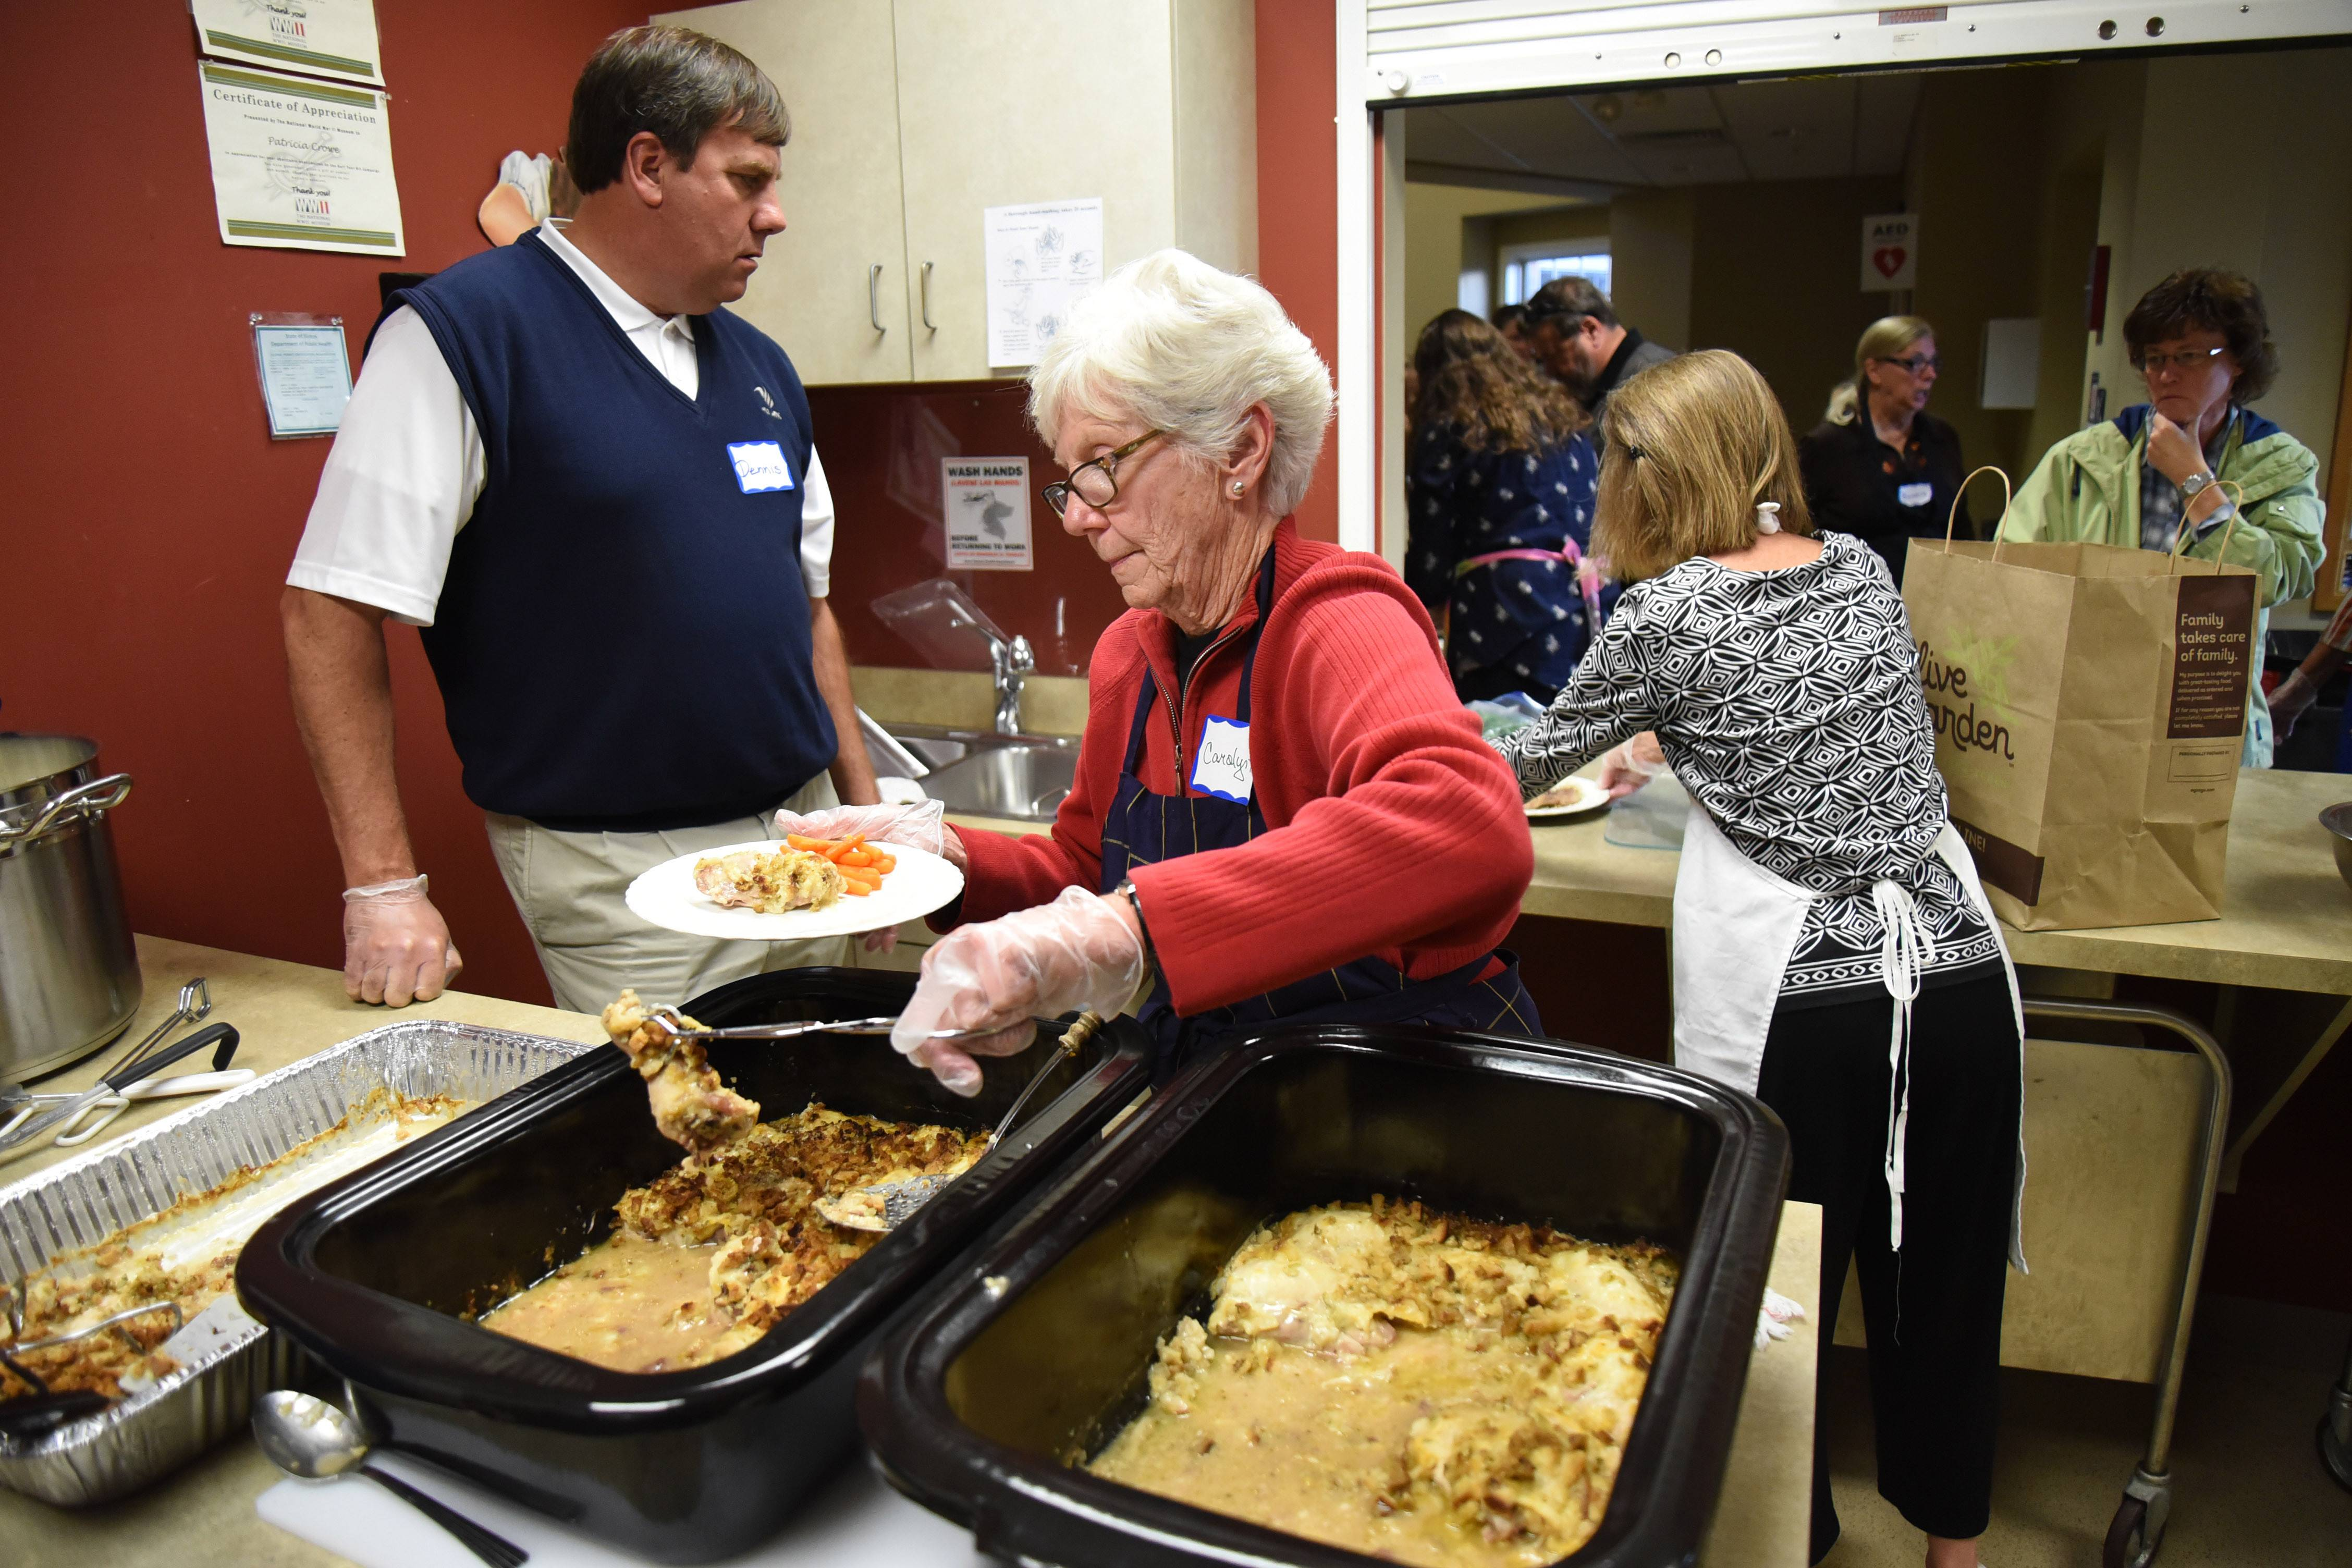 Carolyn Lortz of Elgin serves up a dinner plate with chicken as the First Congregational Church of Dundee hosts its first Hilltop Community Supper in West Dundee.